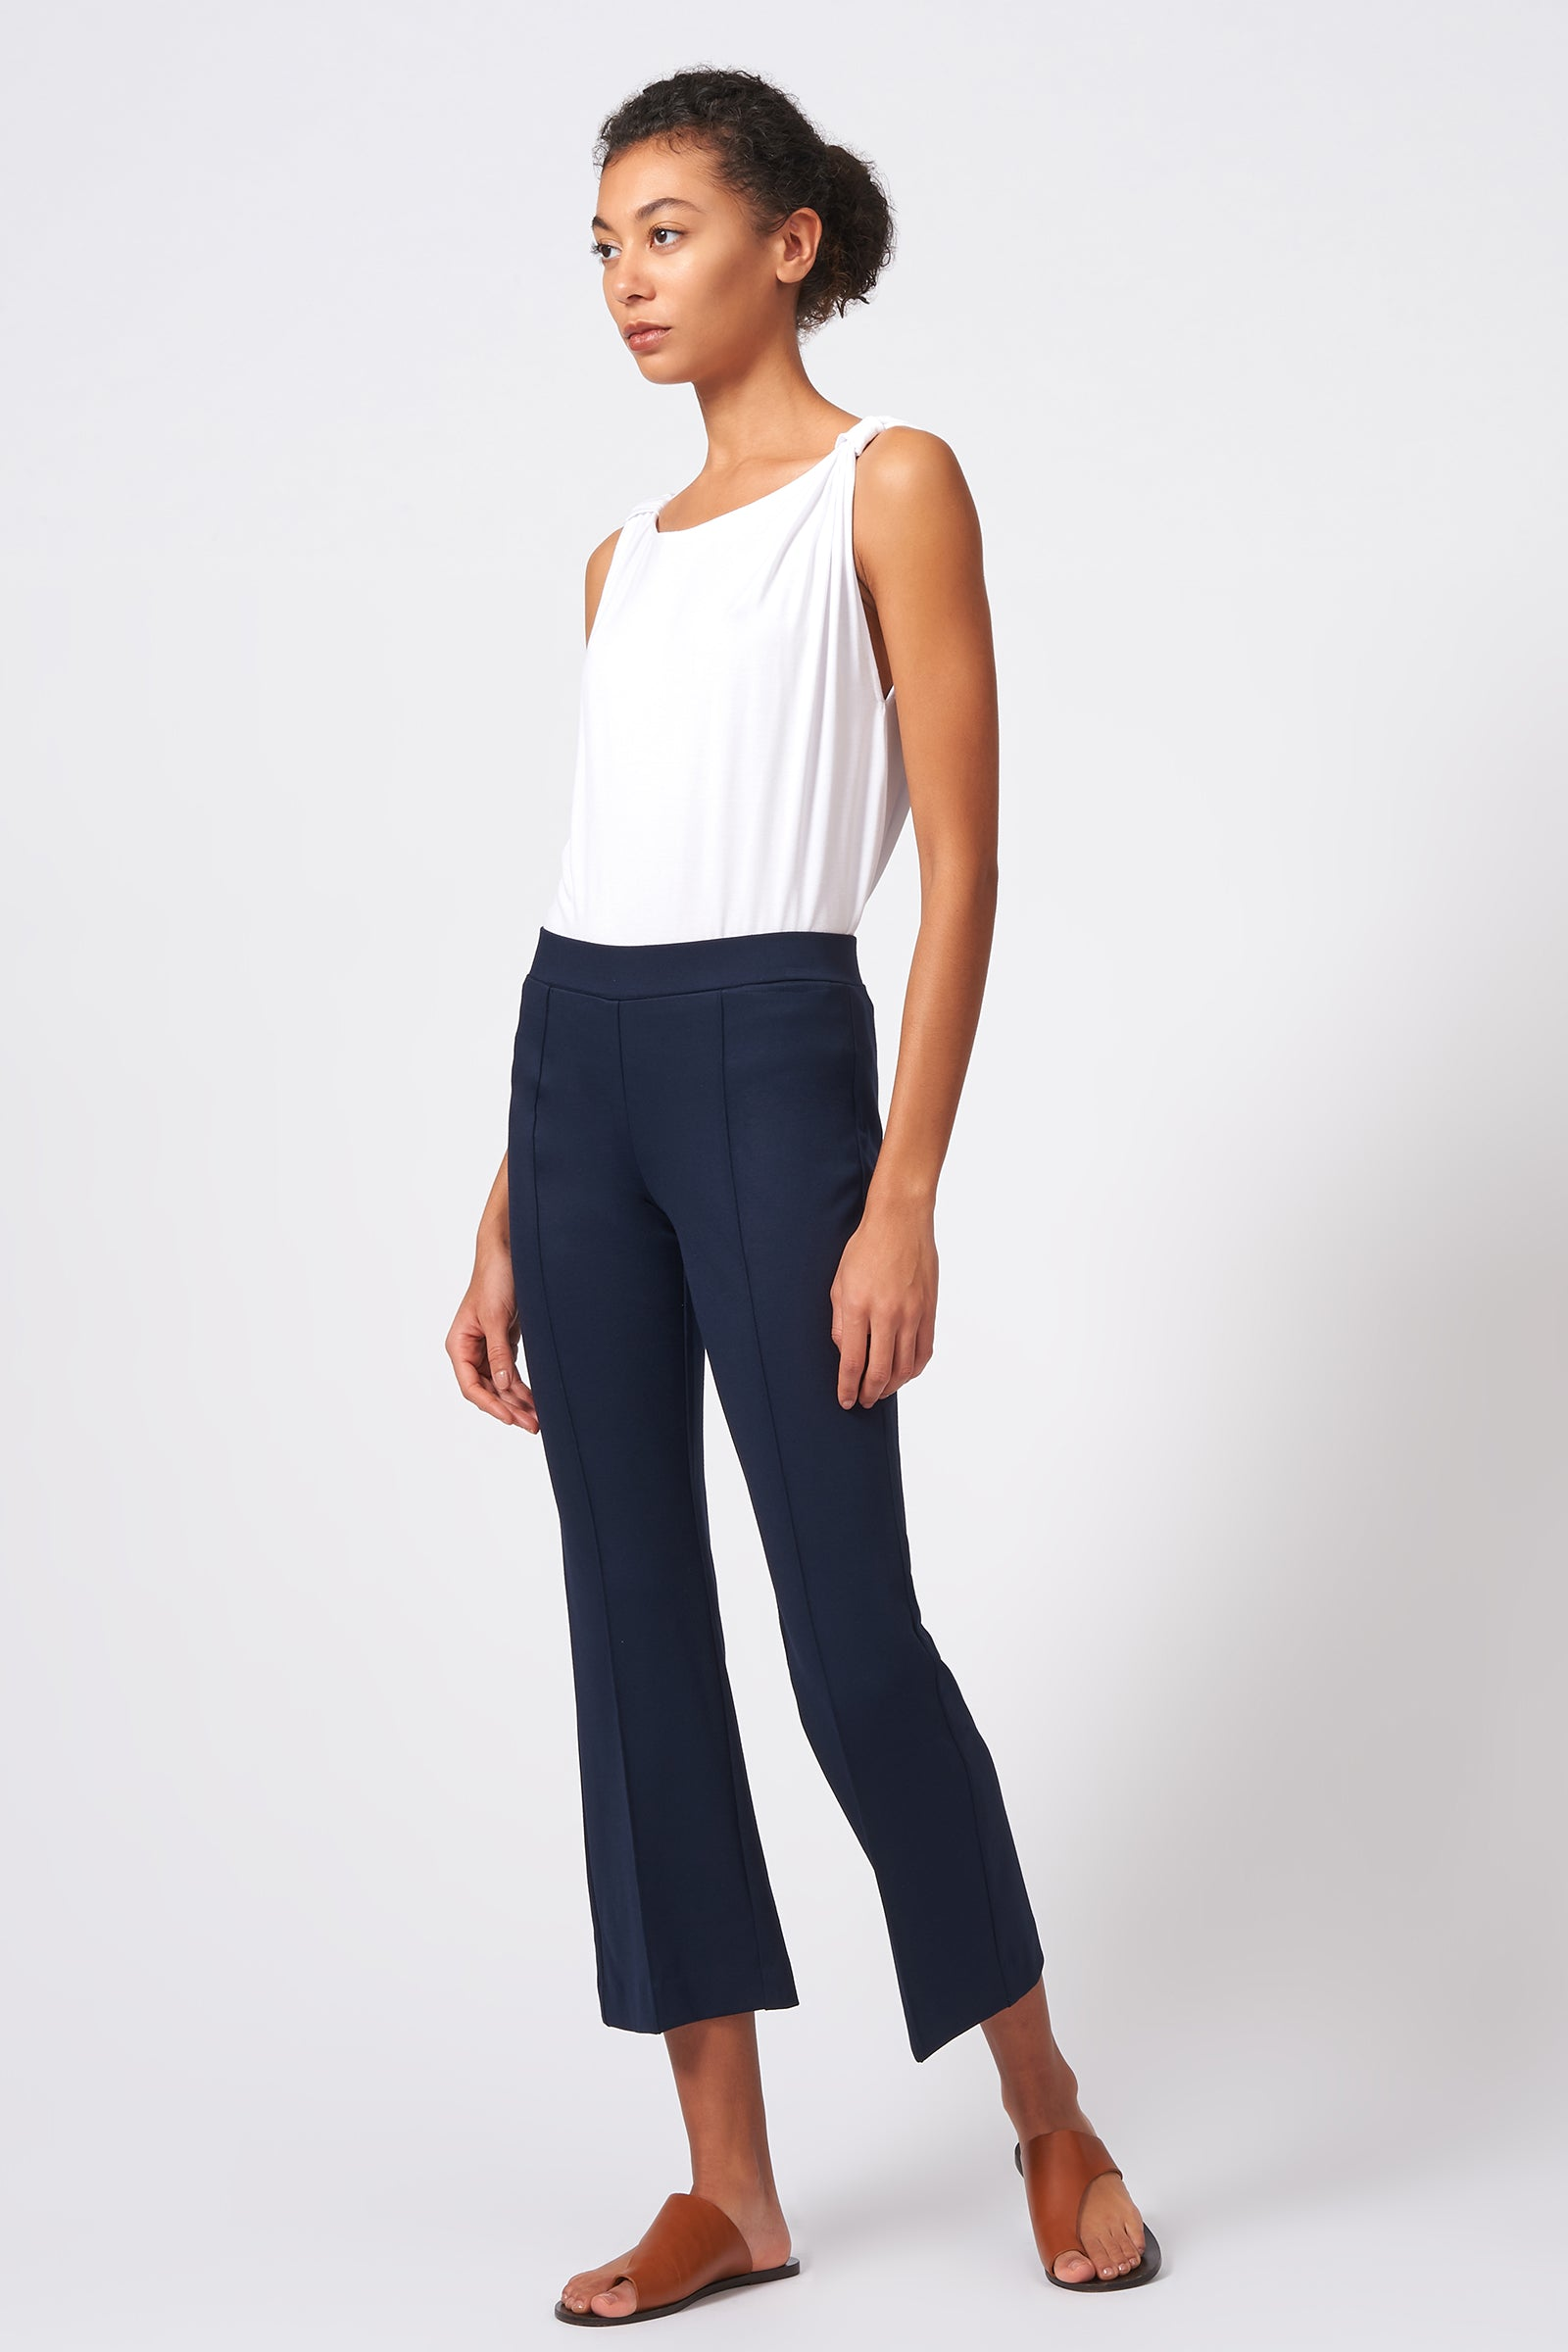 Kal Rieman Pintuck Crop Flare in Navy on Model Front Side Full View